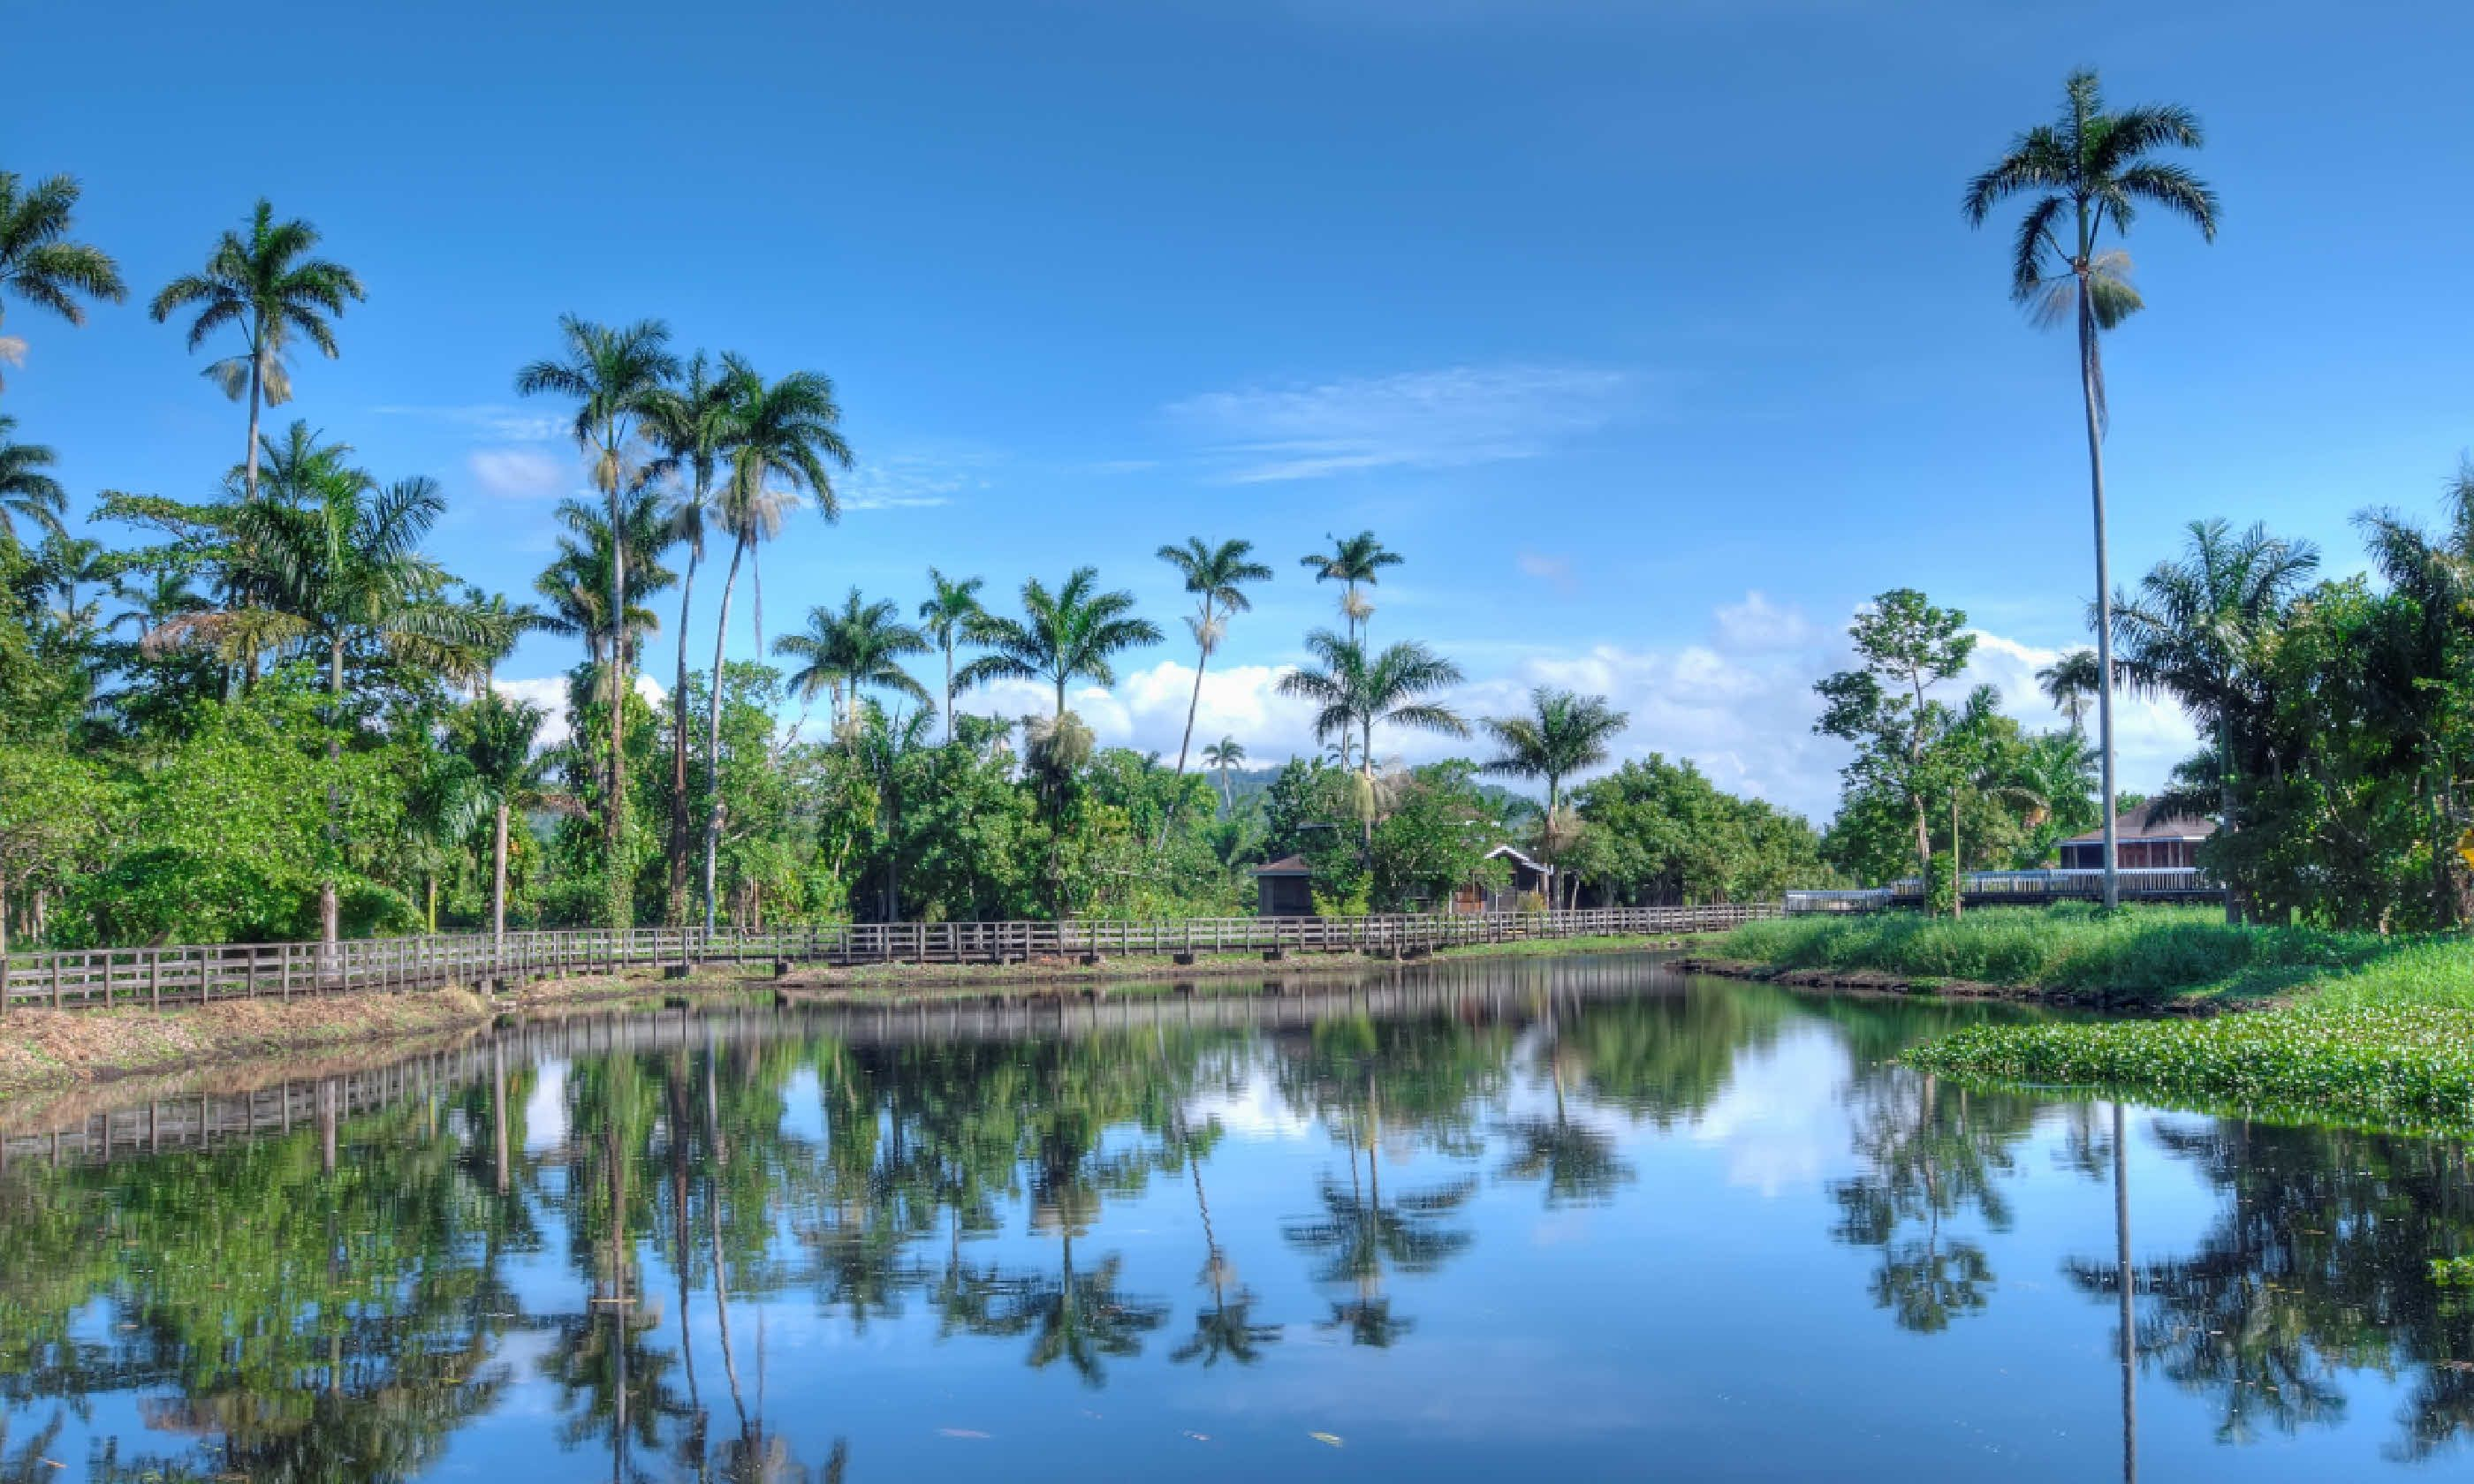 Jamaican landscape with lake and palms (Shutterstock)